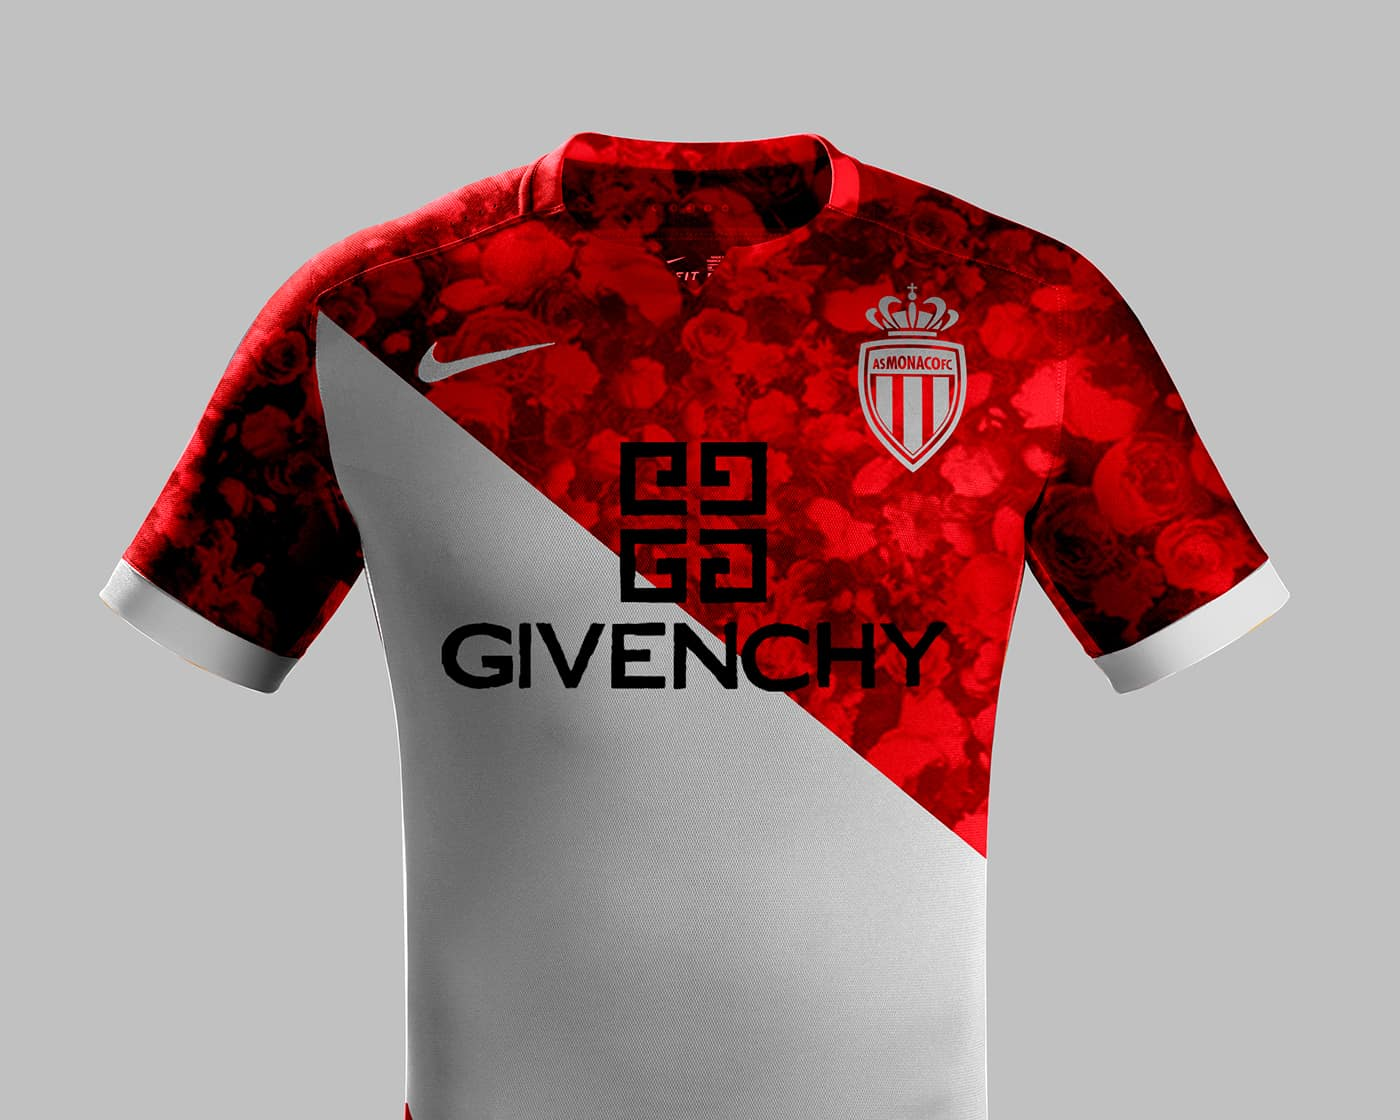 maillots-nike-sean-bull-graphiste-behance-mode